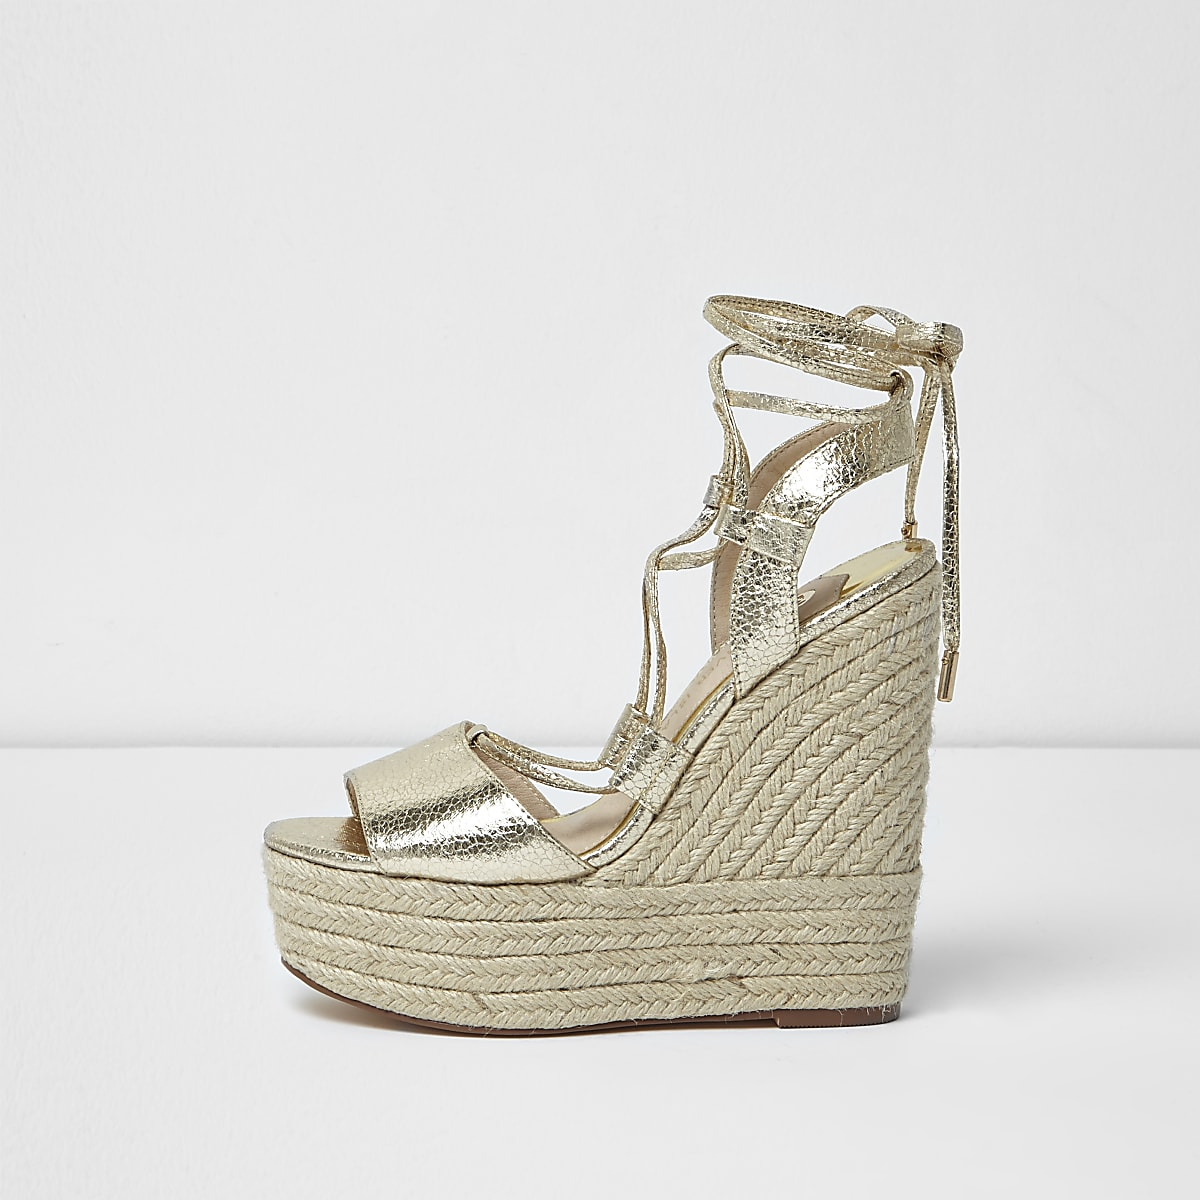 513f5c5640c Gold wide fit tie espadrille platform wedges - Sandals - Shoes   Boots -  women